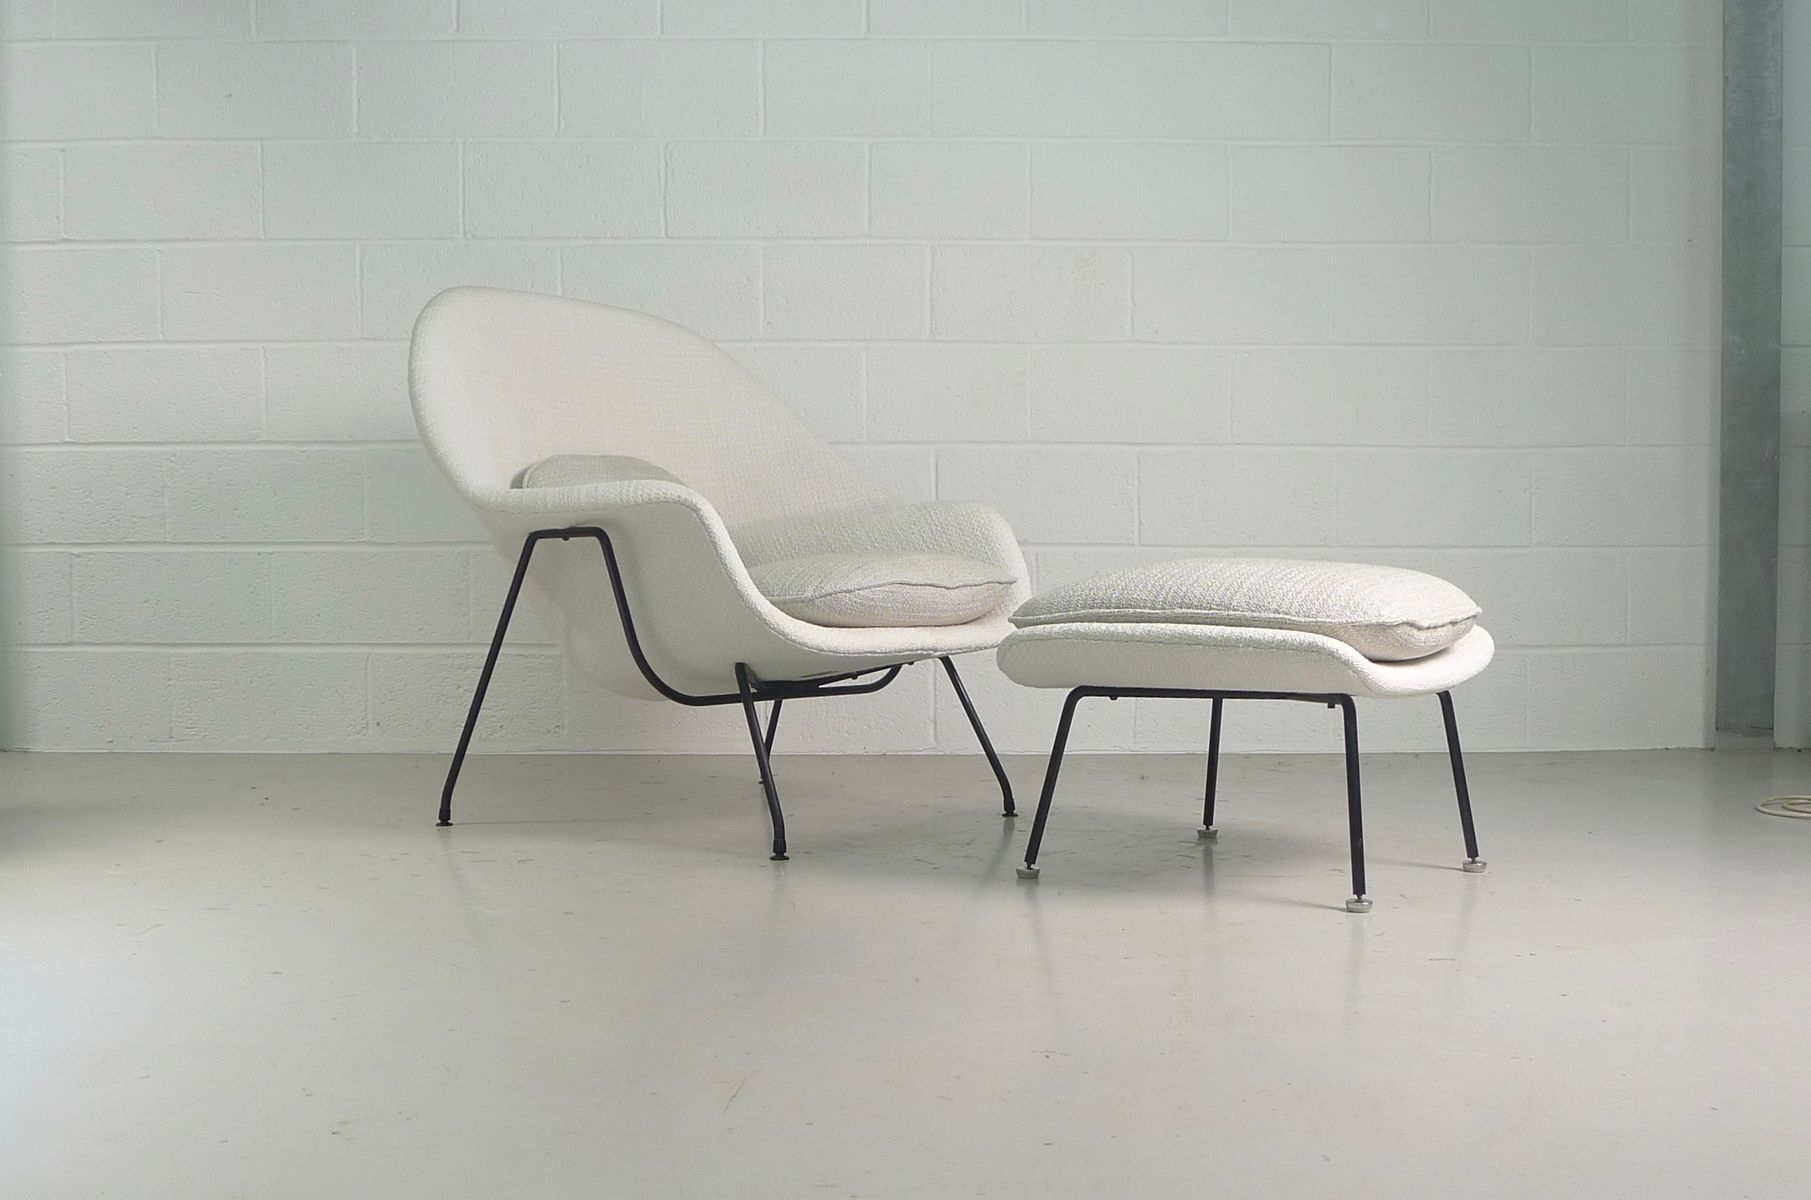 Knoll womb chair - Vintage Womb Chair And Ottoman By Eero Saarinen For Knoll